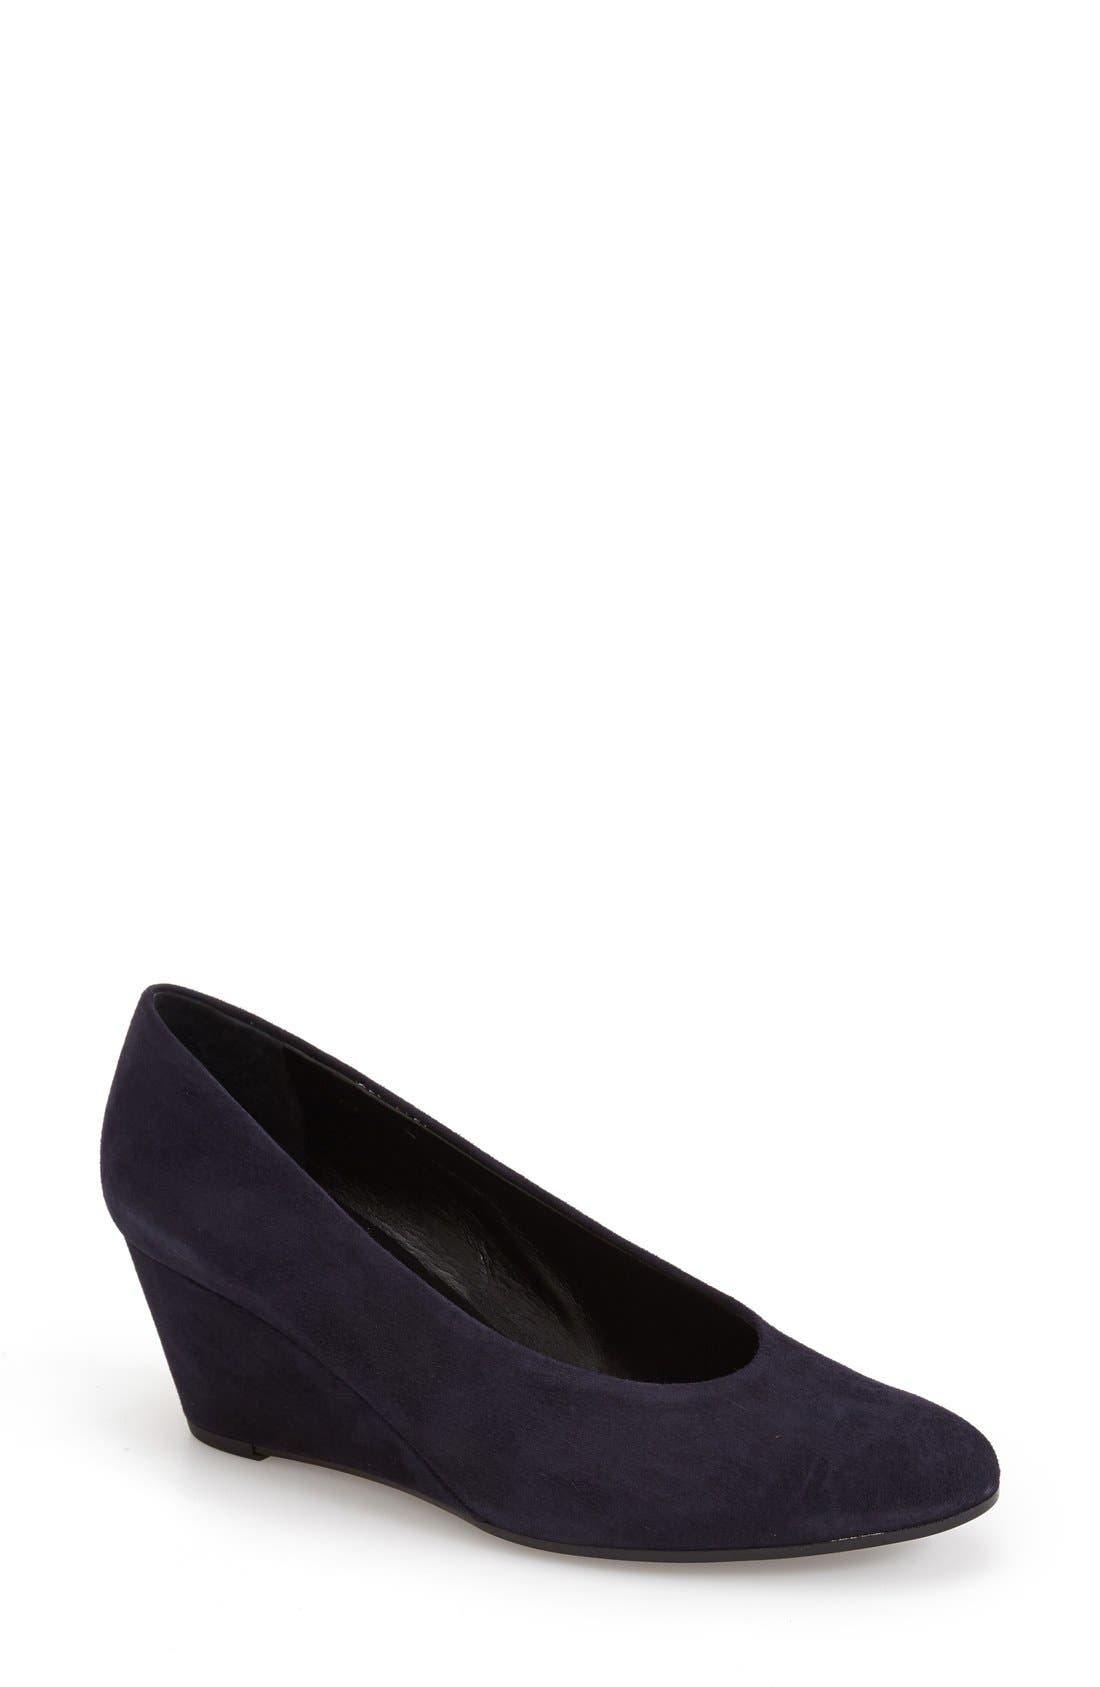 Main Image - VANELi 'Dilys' Wedge Pump (Women)